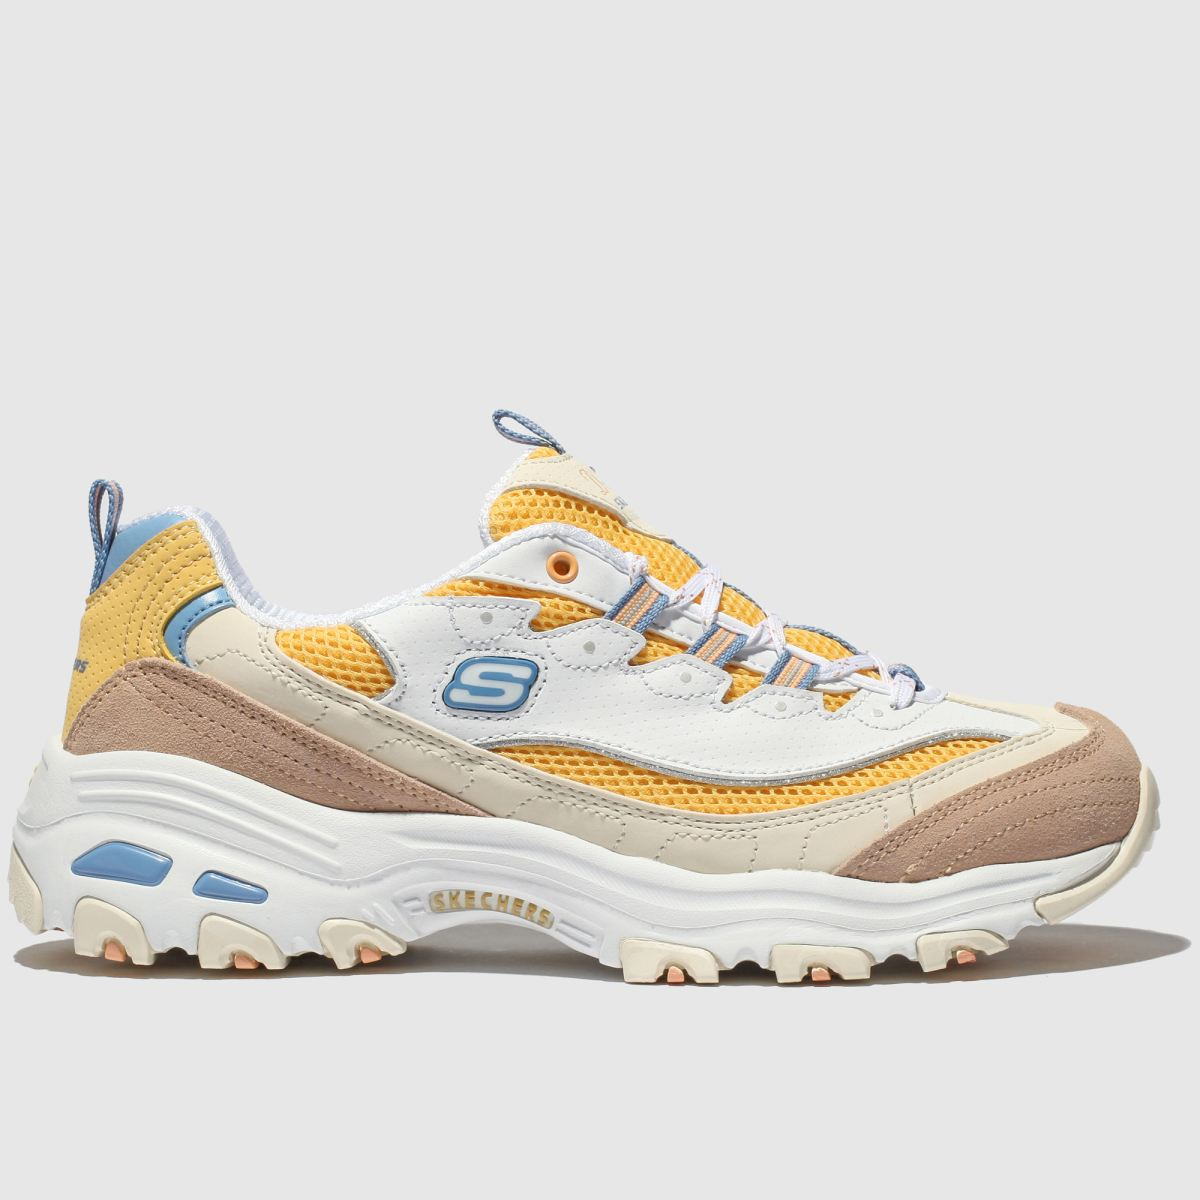 Skechers White & Yellow Dlites Second Chance Trainers